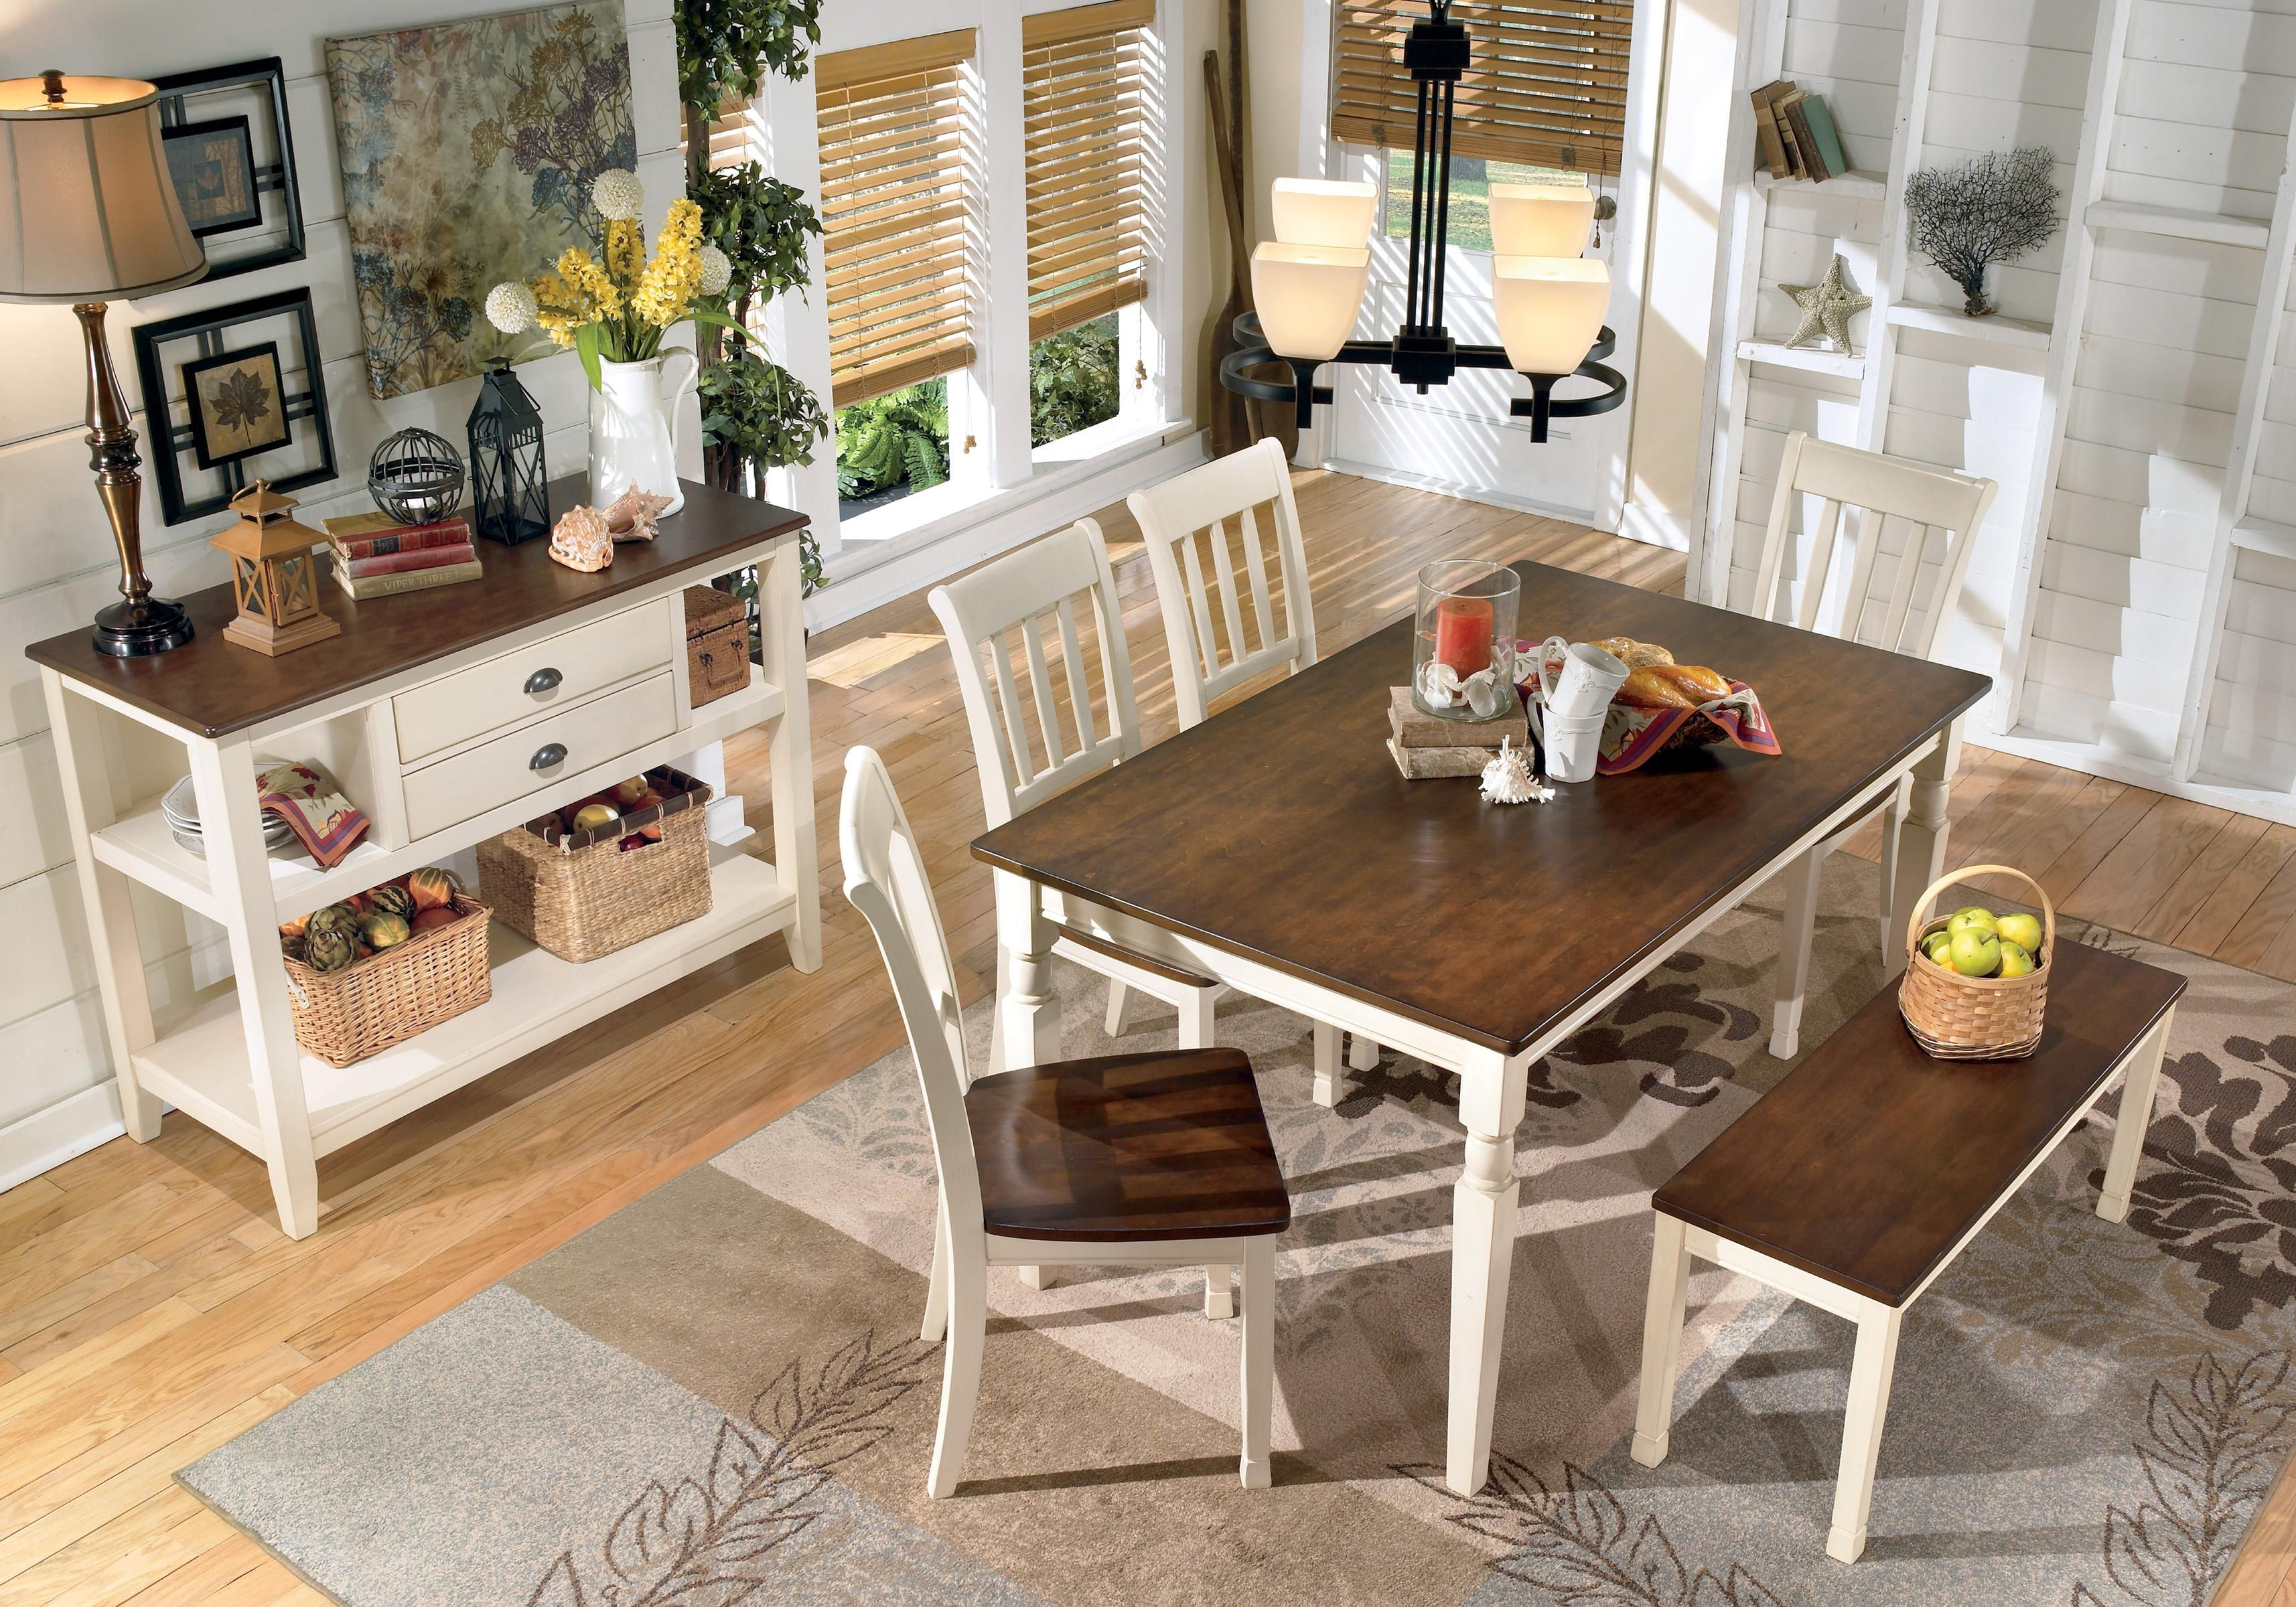 Whitesburg 5-Piece Two-Tone Cottage Round Table Set with regard to Furniture Mart Fort Morgan Co